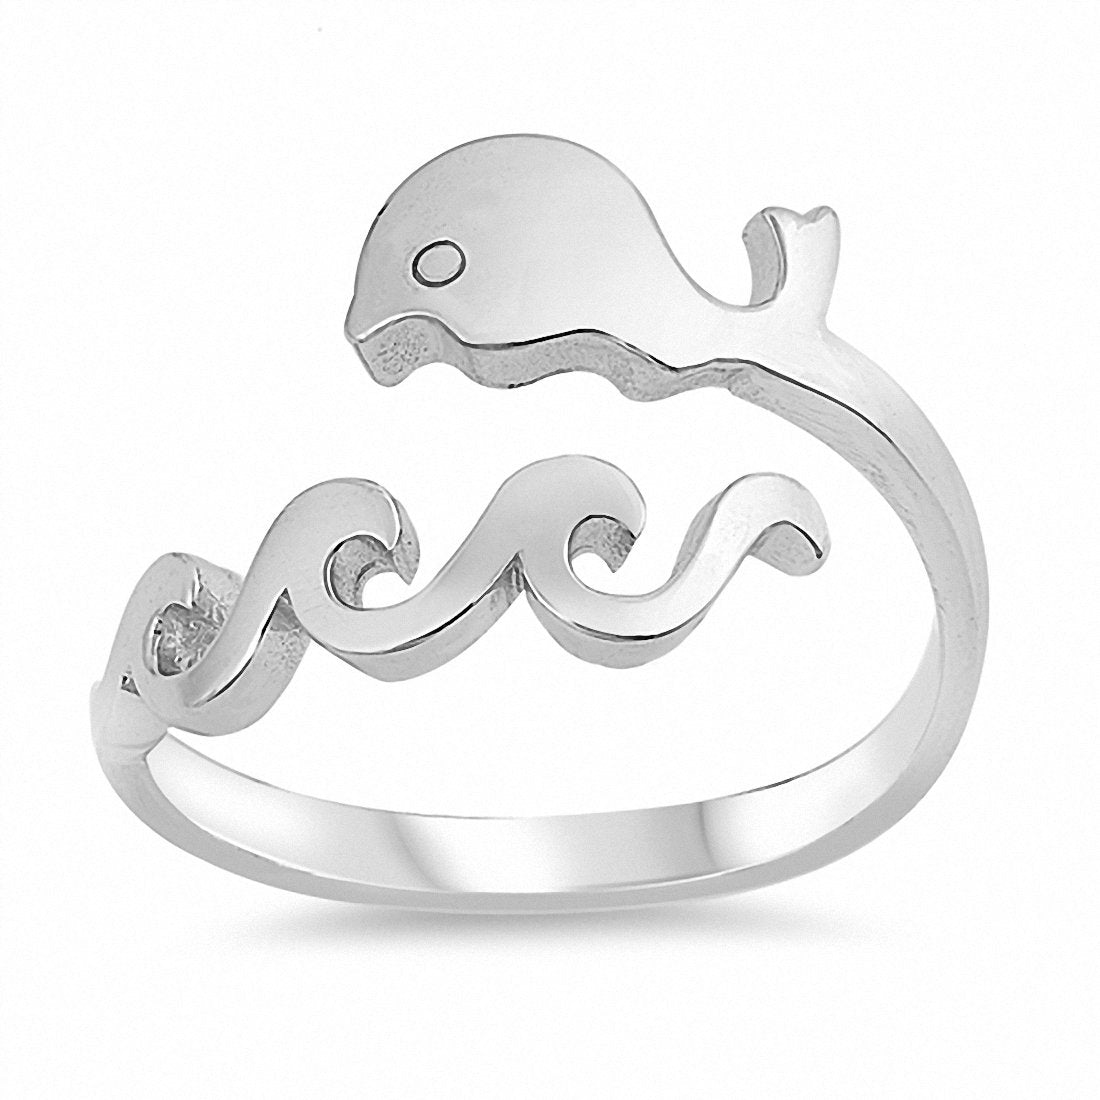 Wave and Whale Ring Band 925 Sterling Silver